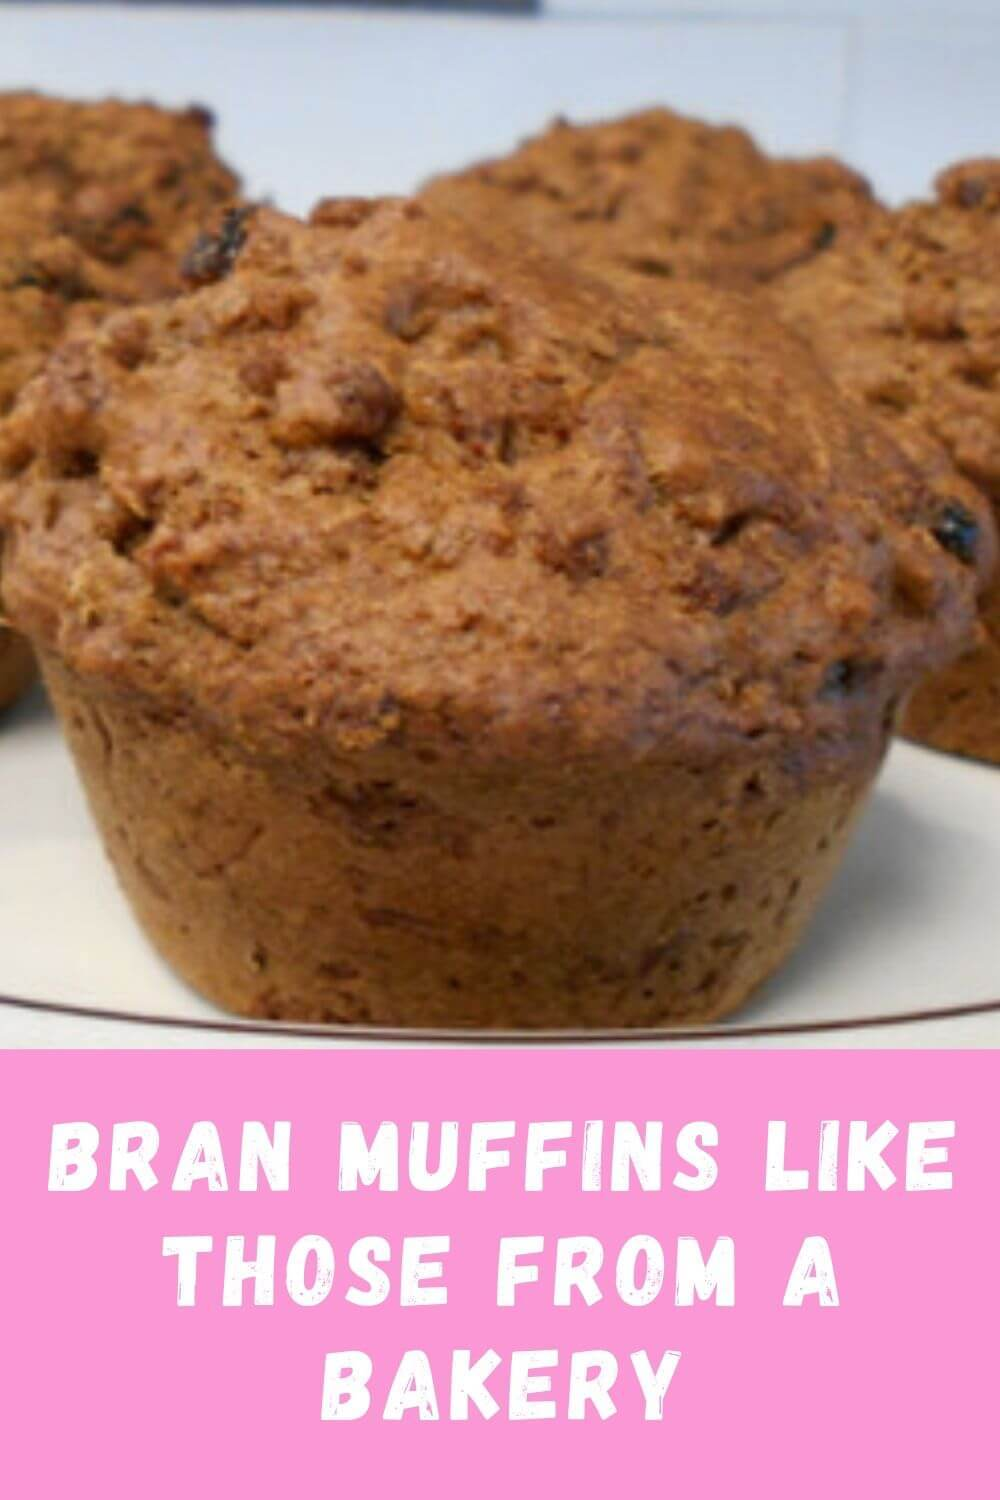 Bran muffins like those from a bakery